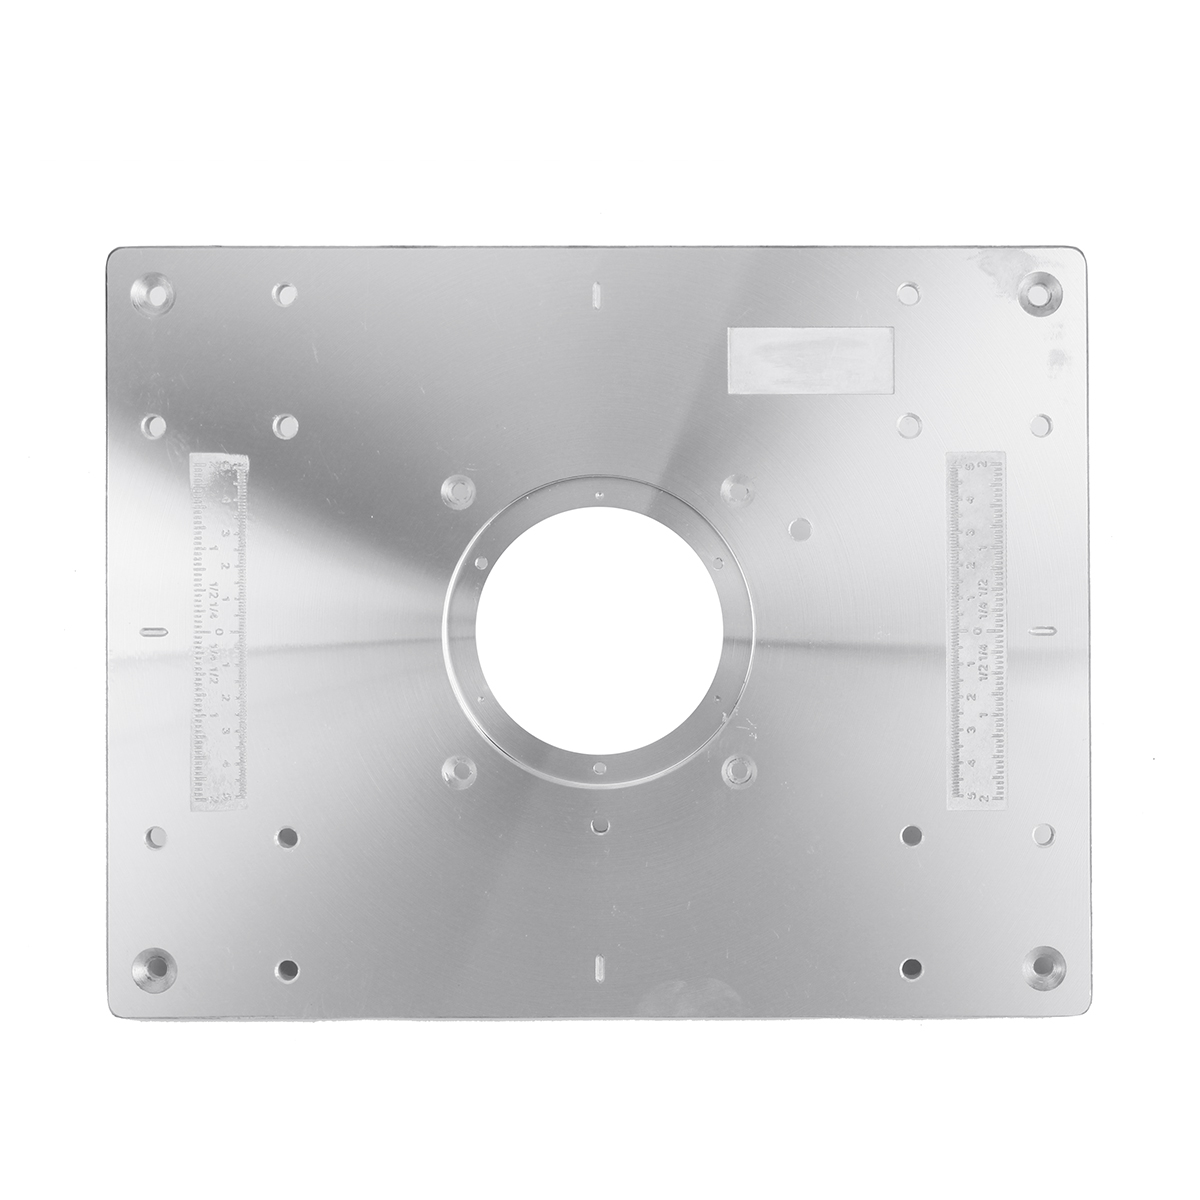 297mm x 235mm x 9mm Aluminium Alloy Router Table Insert Plate For Woodworking